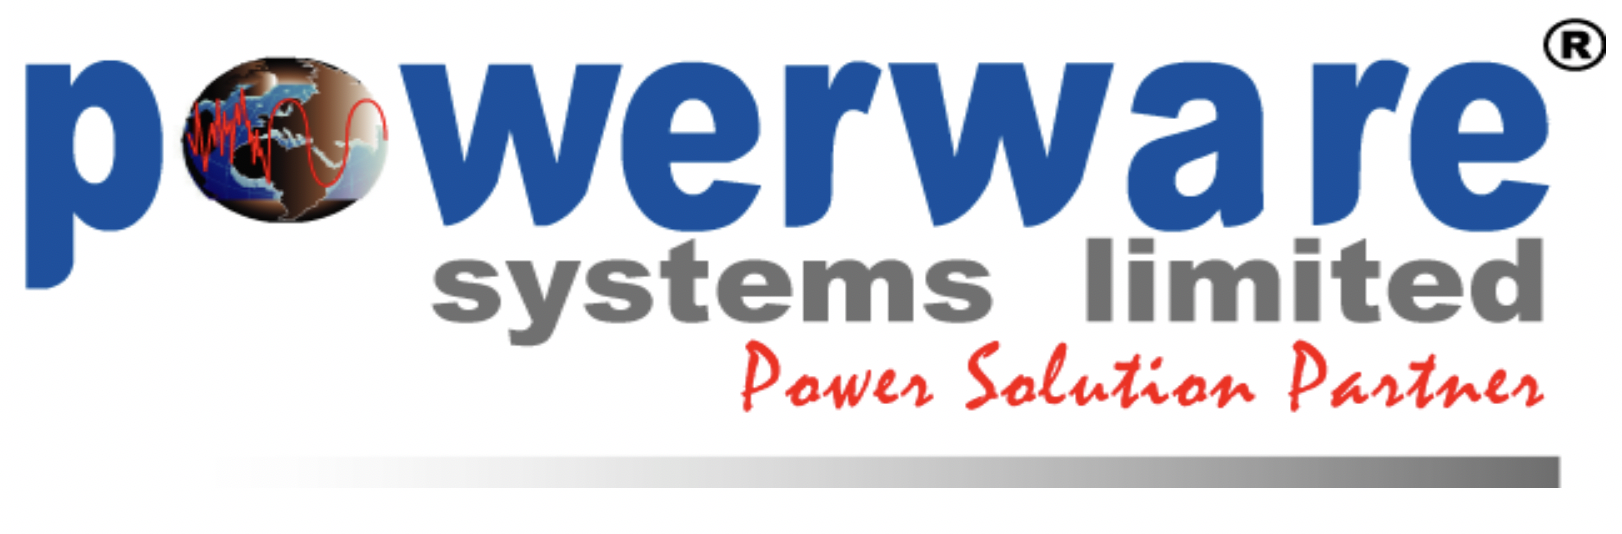 Powerware Systems Limited